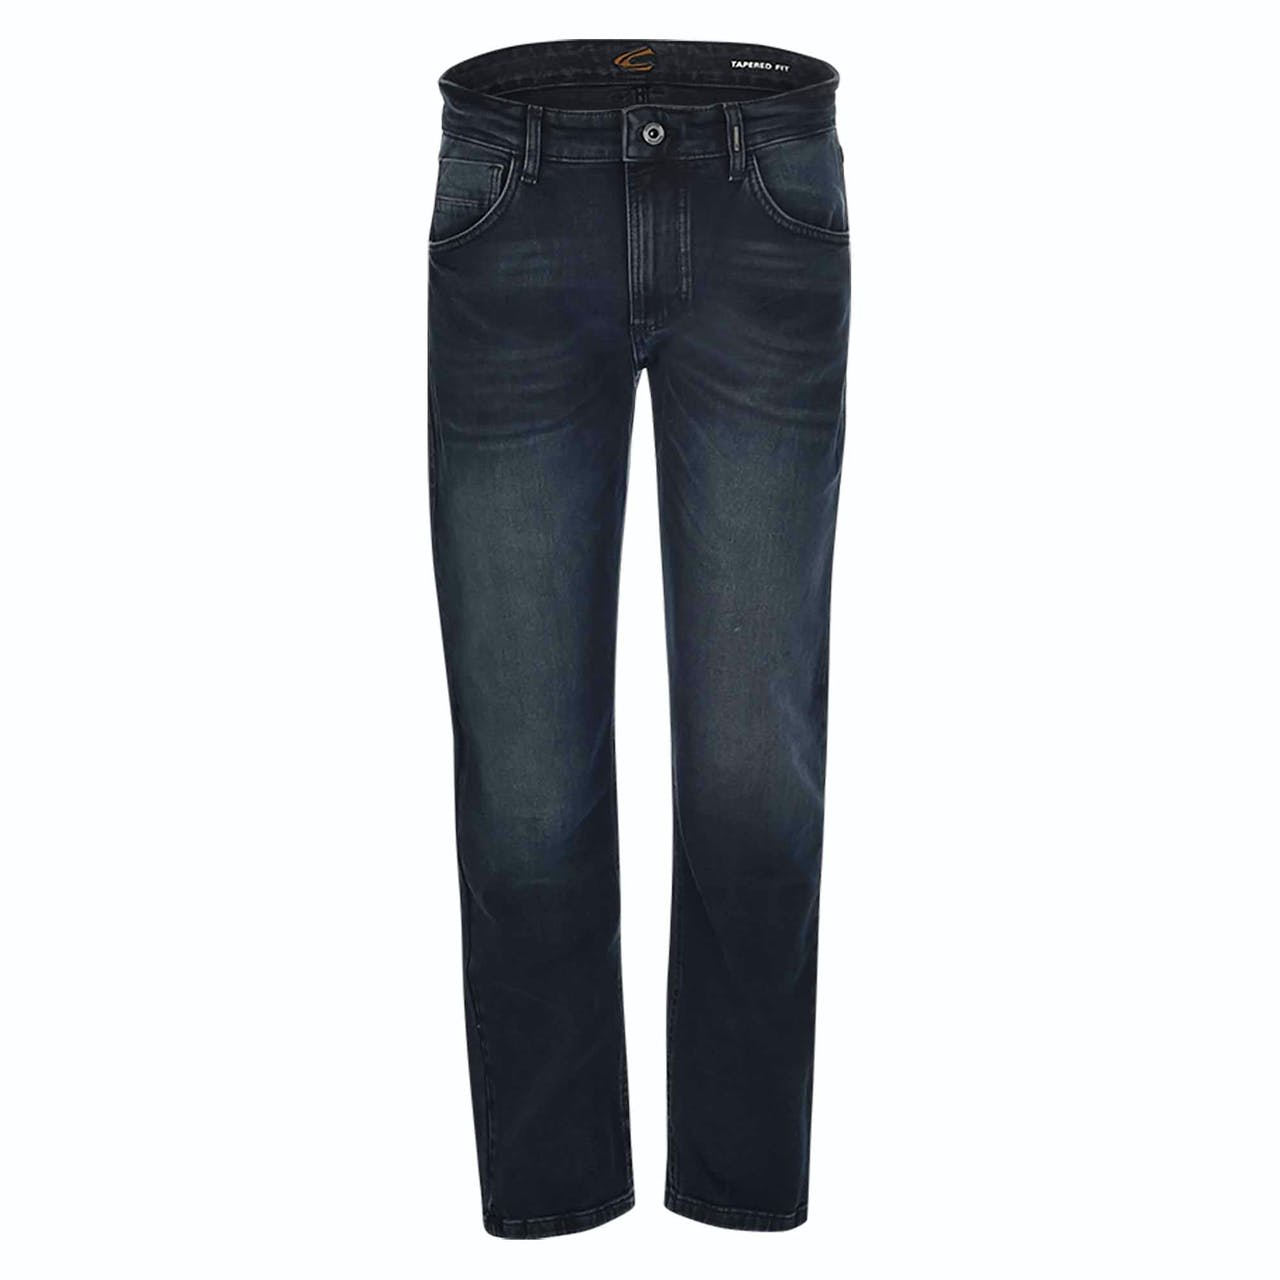 Jeans - Tapered Fit - 5-Pocket